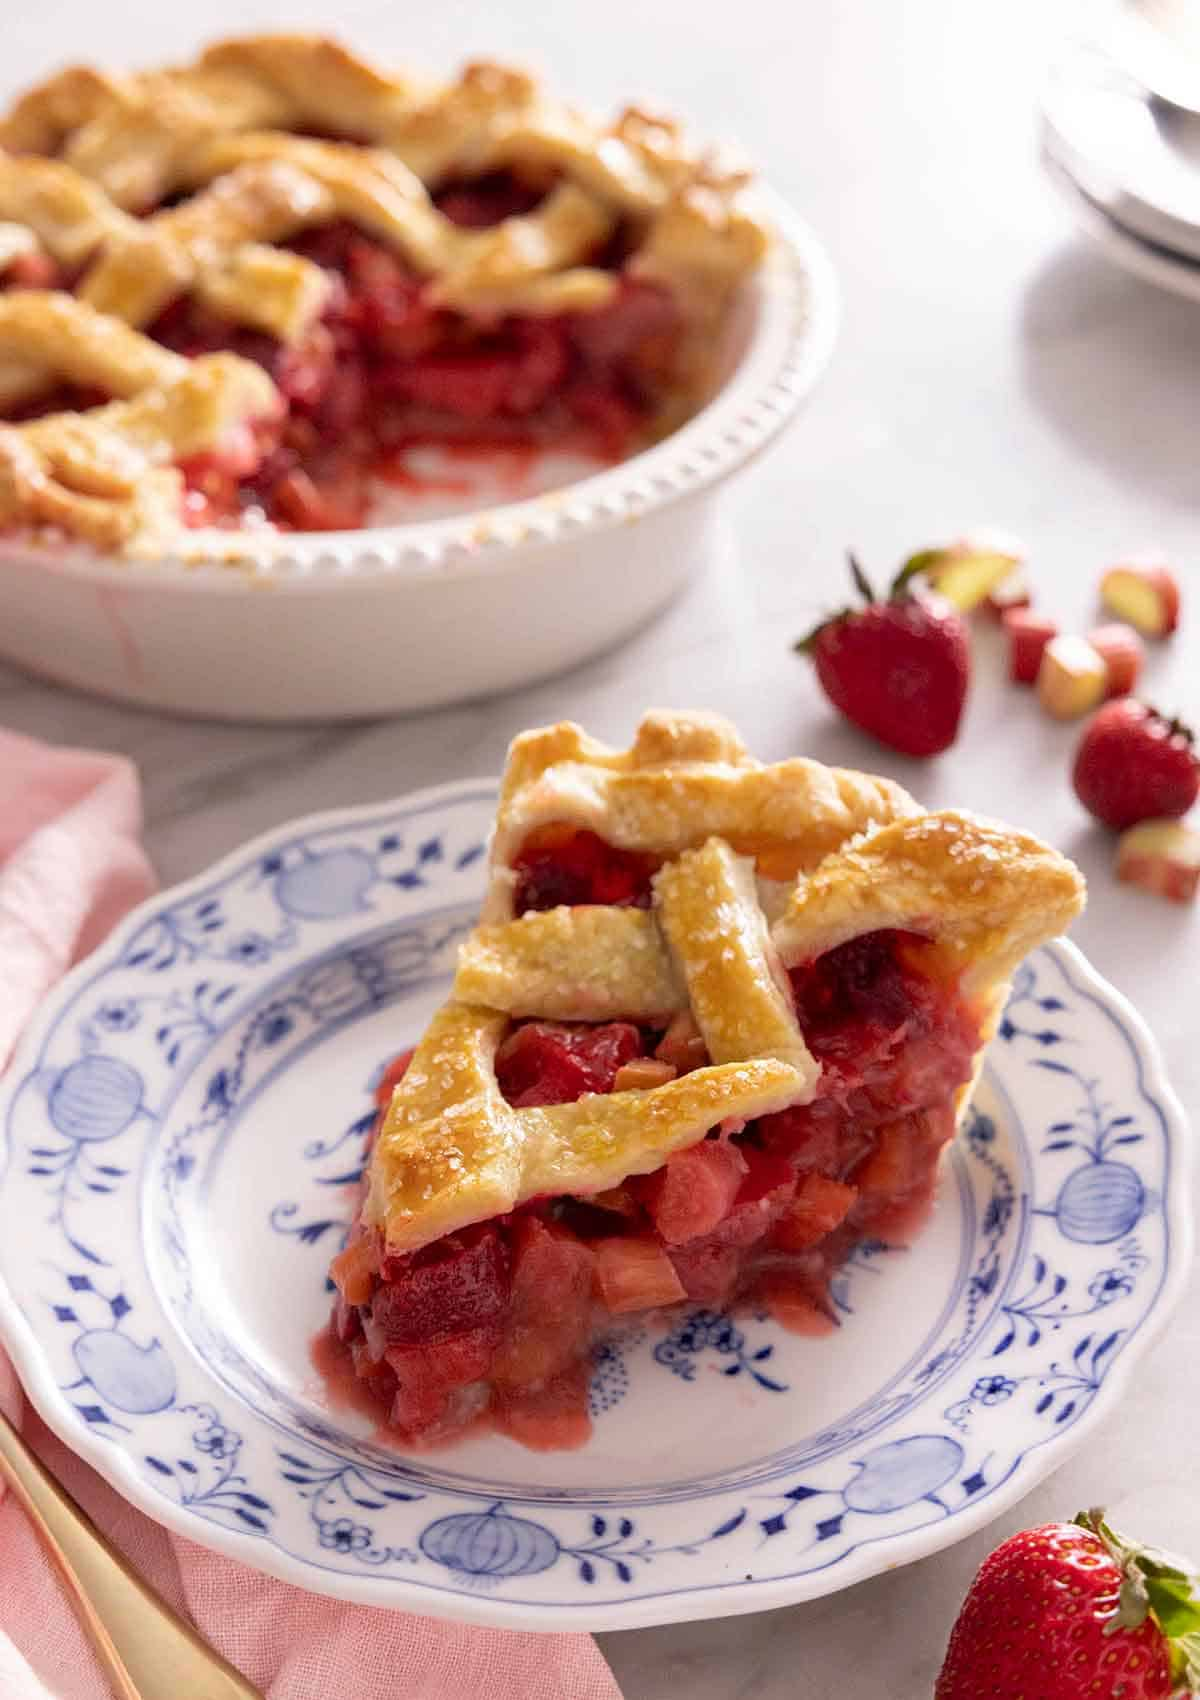 A slice of strawberry rhubarb pie on a plate with the rest of the pie in the ground out, out of focus.